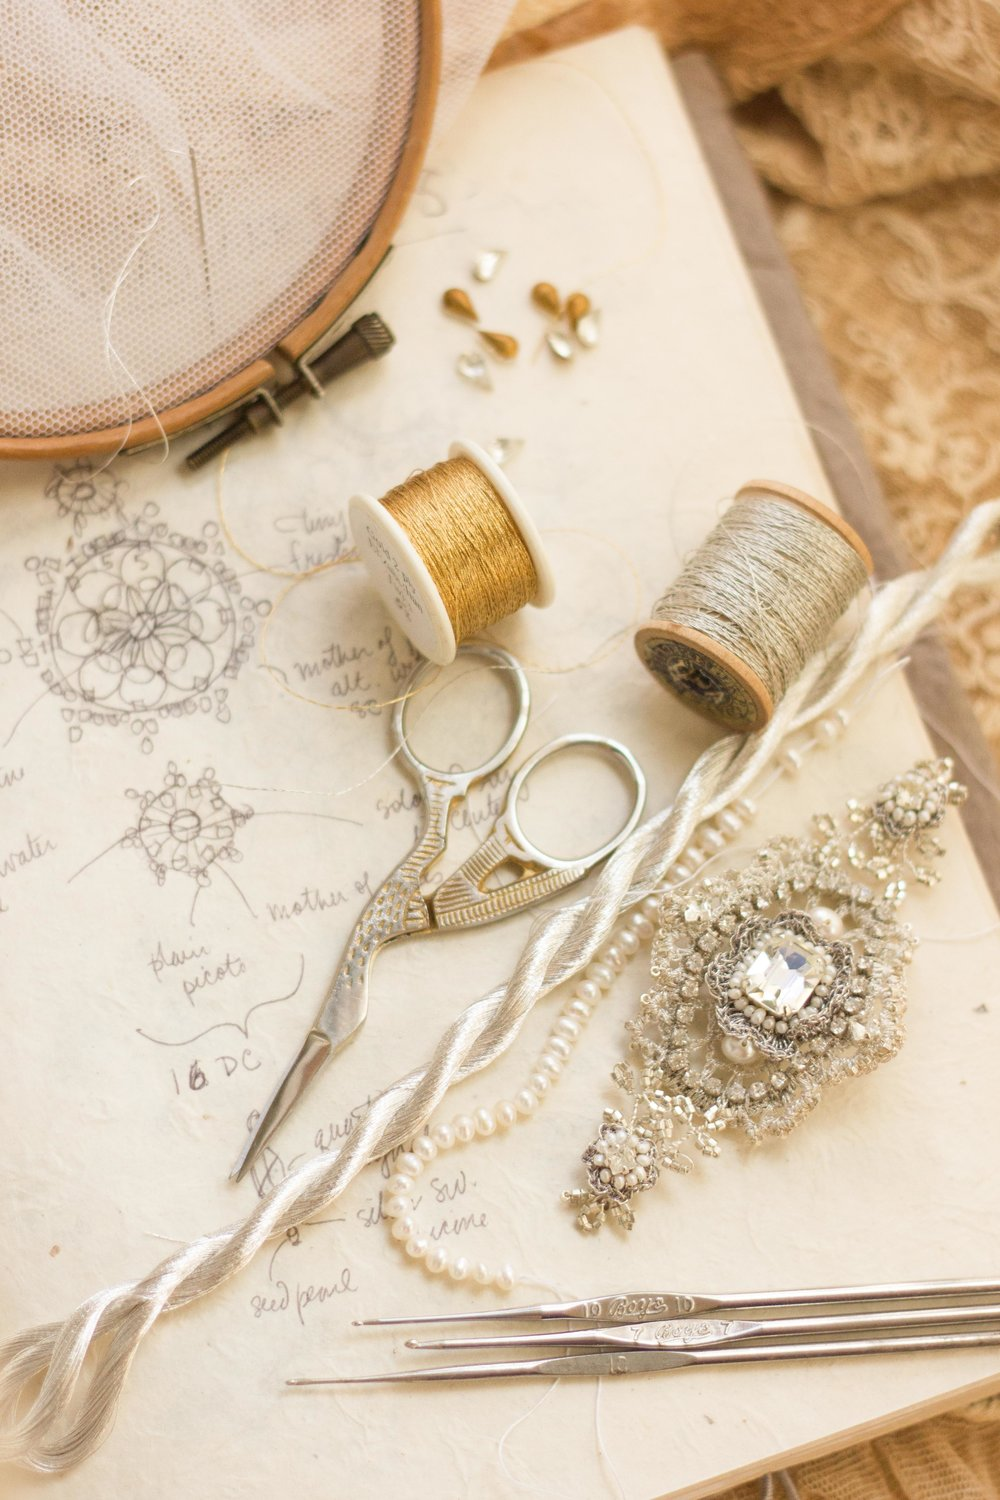 About Us - Couture techniques and heirloom materials